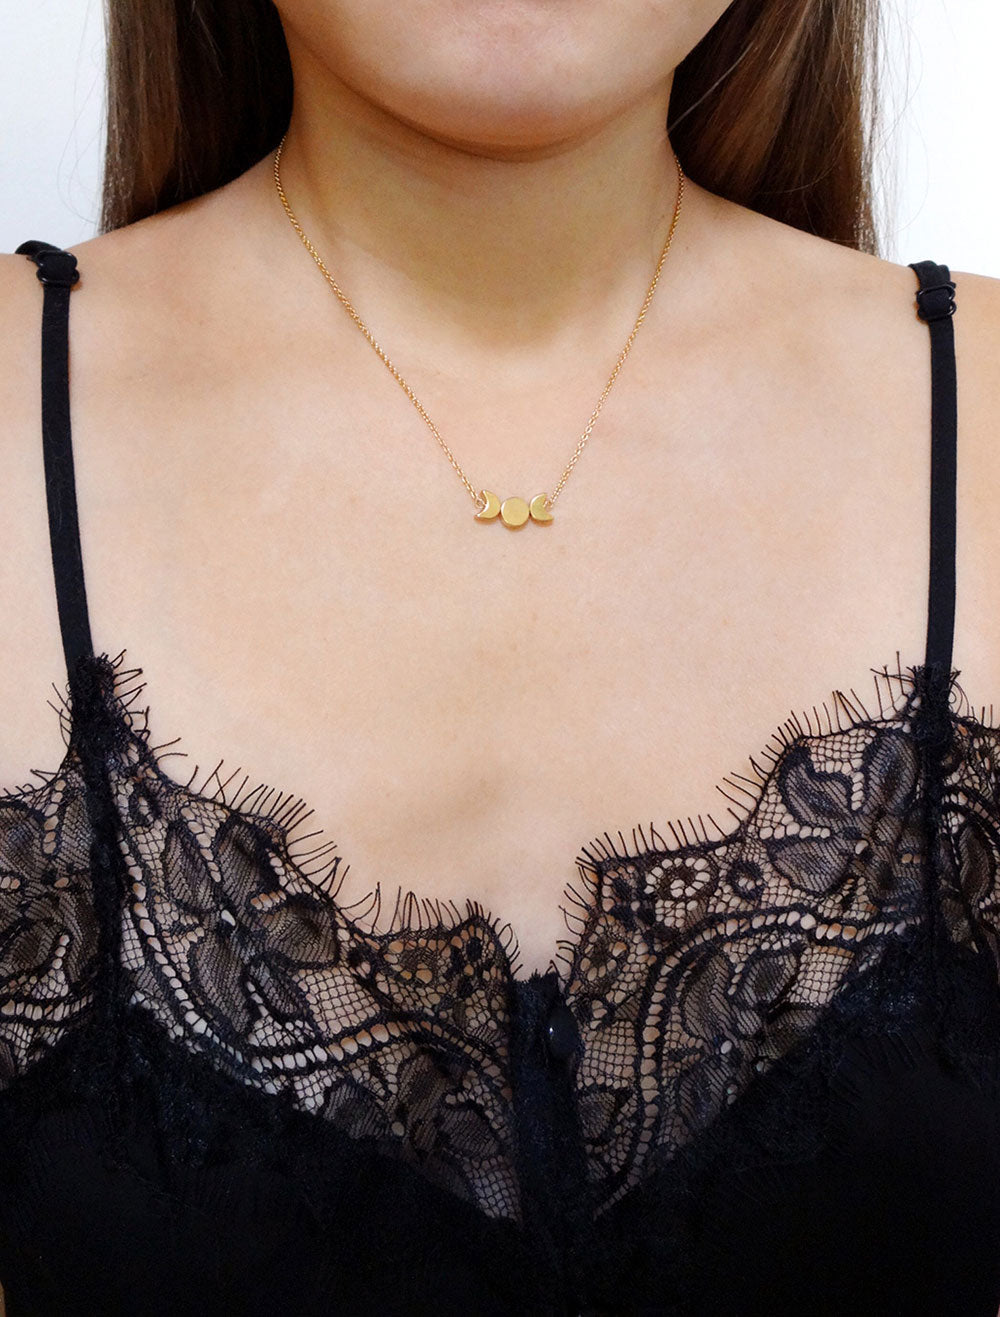 gold moon phase neckalce modelled